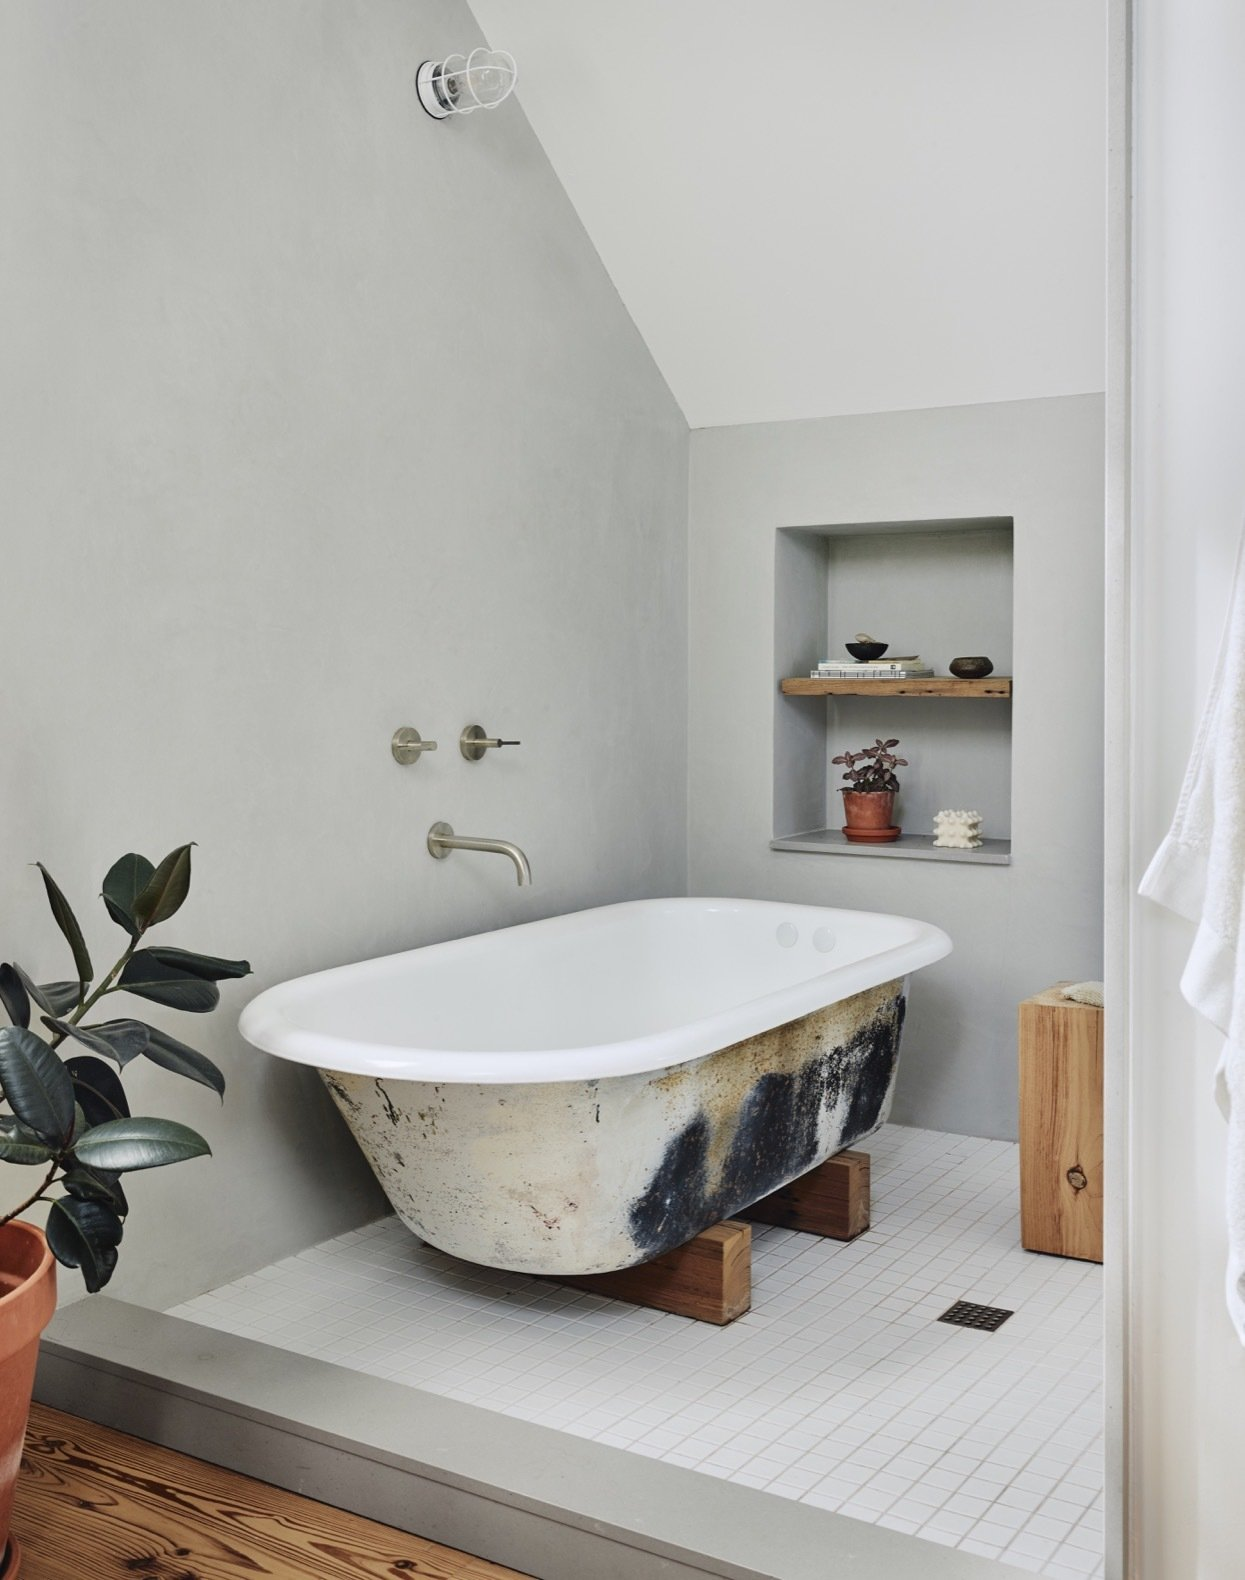 Bath Room and Soaking Tub The clawfoot tub was a salvaged find, while reclaimed wood was used for the shelving.   Photo 11 of 15 in Peek Inside Photographer Casey Dunn's Dreamy Austin Home